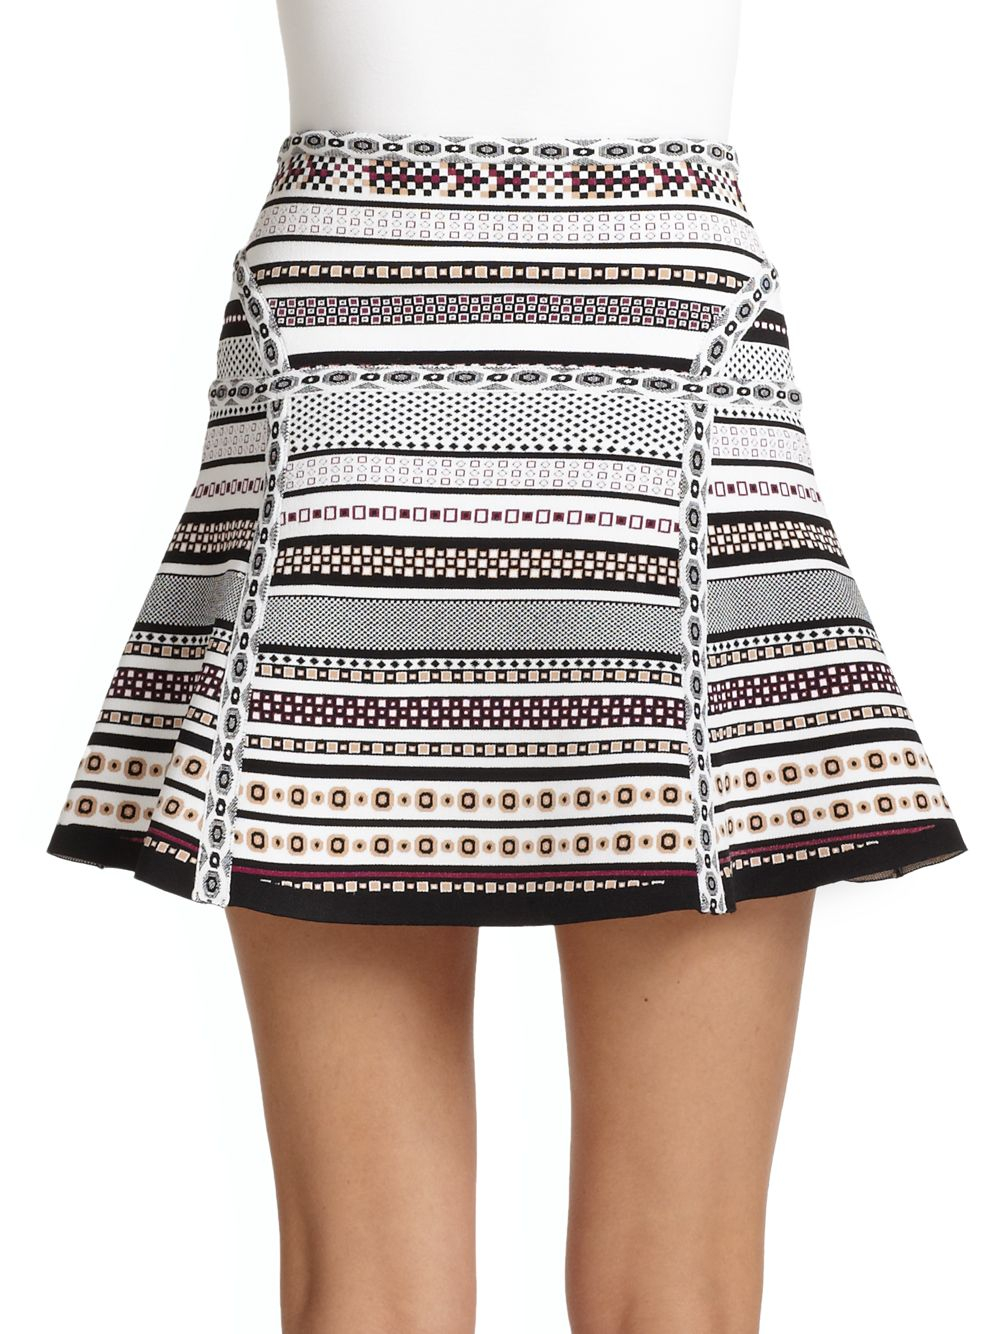 Diane von Furstenberg Crocheted Knee-Length Skirt Clearance Low Shipping Buy Cheap Eastbay Many Kinds Of Online With Paypal Cheap Price Footlocker Finishline Cheap Online GTM8UWO